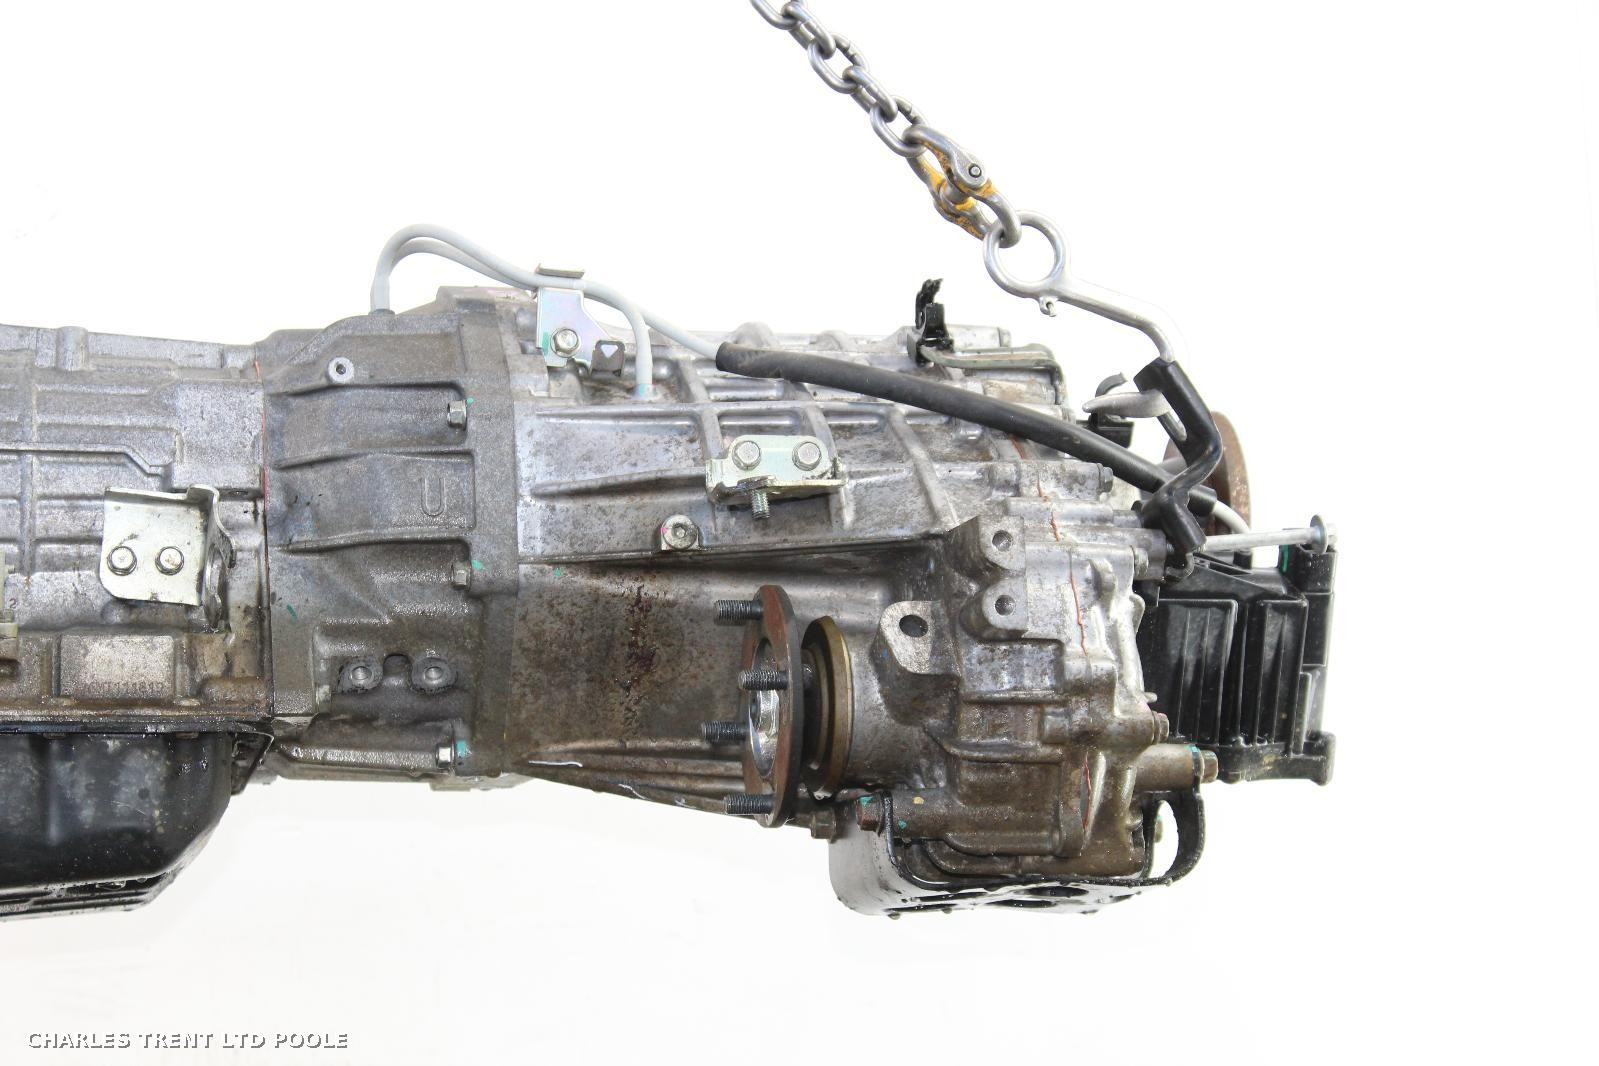 2017 - MITSUBISHI - L200 - GEARBOXES / TRANSMISSIONS